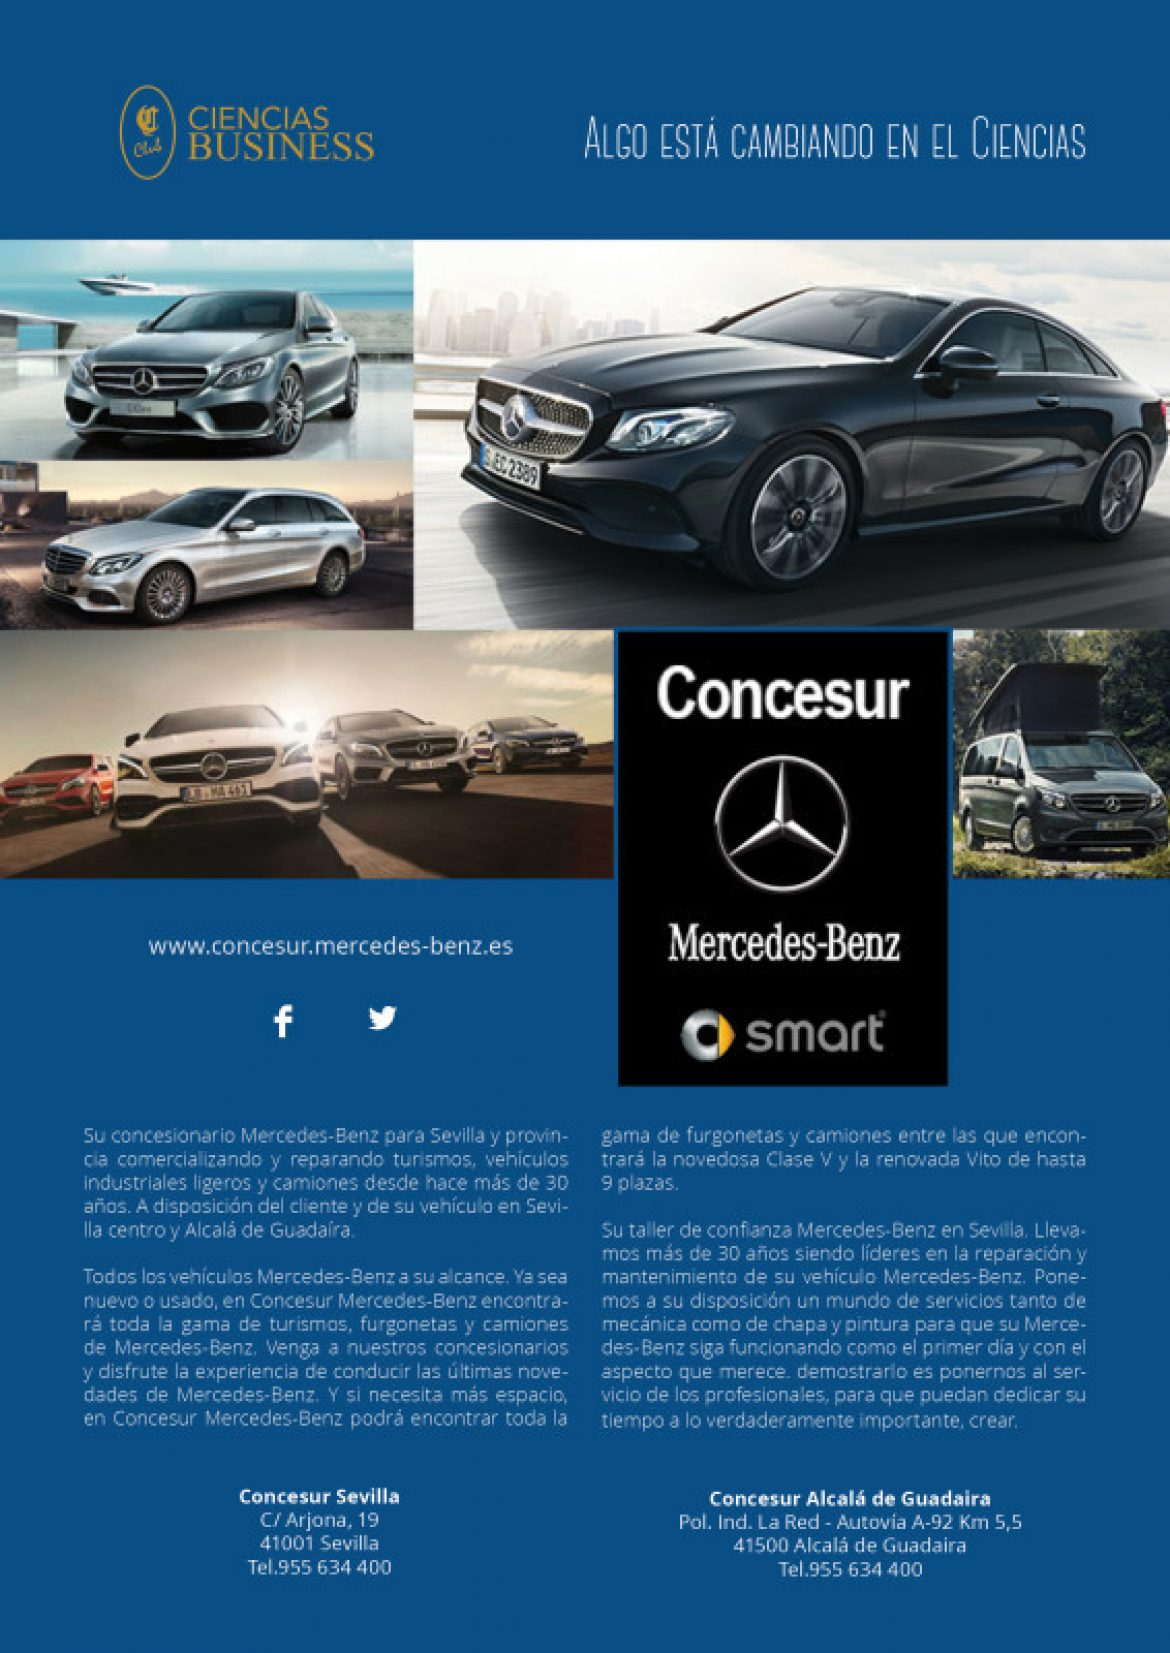 Ciencias Business. Concesur Mercedes-Benz